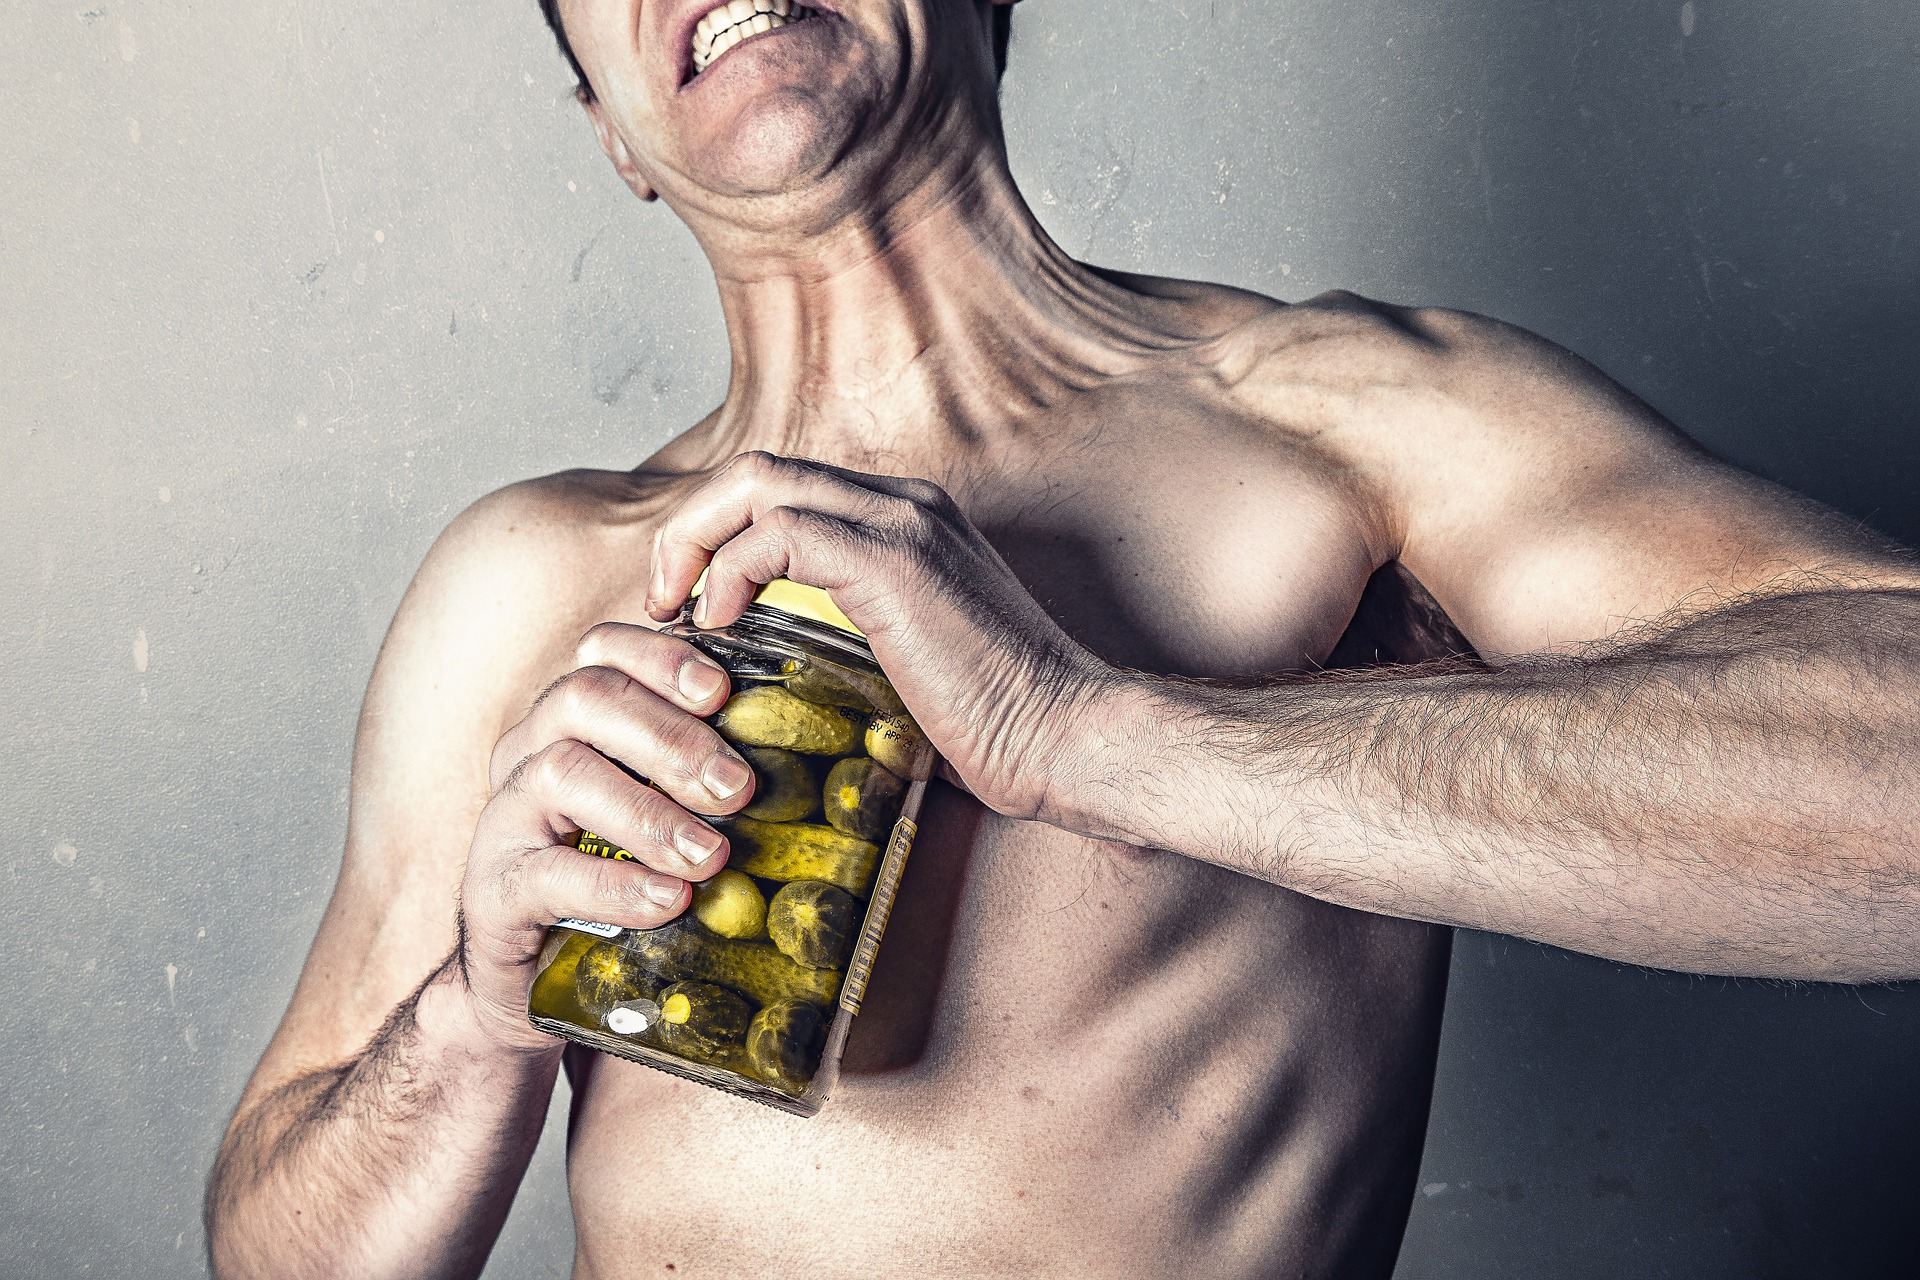 shirtless man attempting to open jar